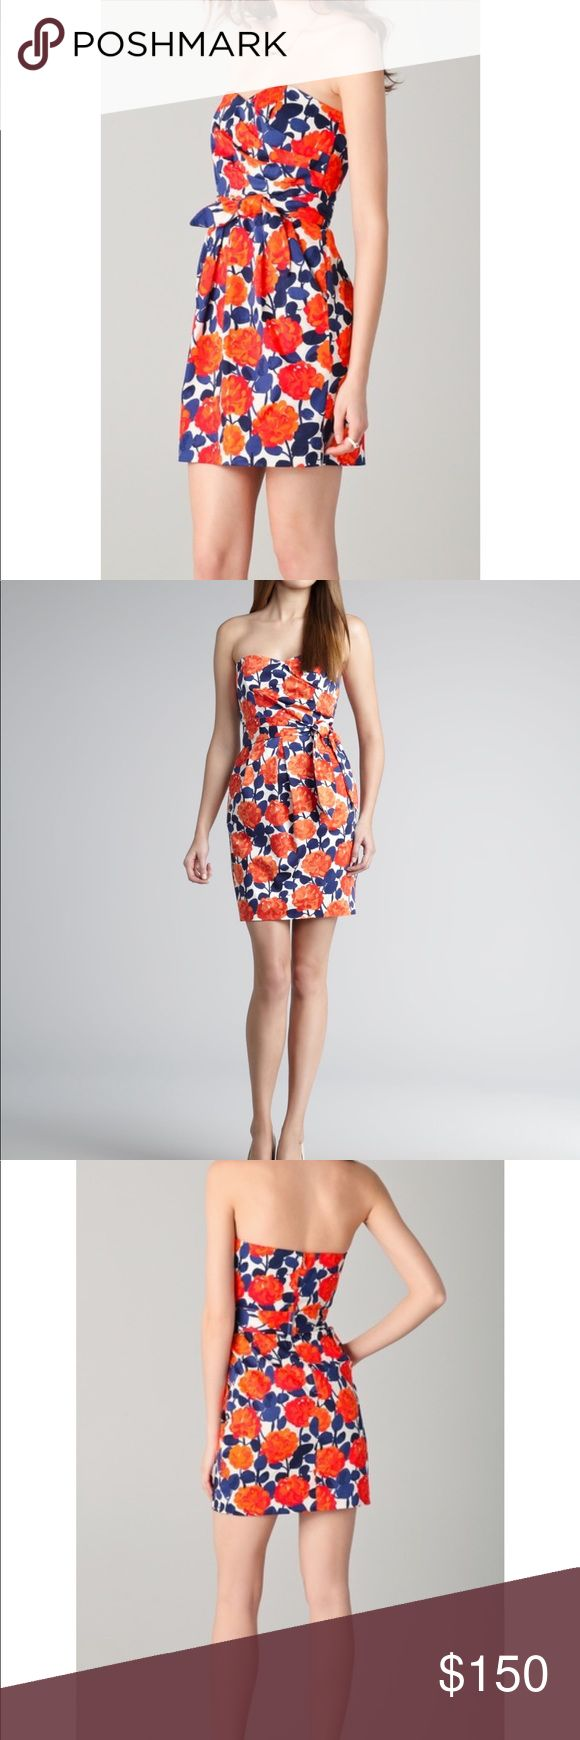 Shoshanna Floral Dress A retro-inspired floral-print is brought to the modern day with a slim, strapless silhouette. Persimmon (orange)/navy/white floral-print sateen. Strapless sweetheart neckline. Tonal sash waist. Box-pleat tulip skirt. Hidden back zip. Cotton/nylon/spandex. Dry clean. Imported. Shoshanna Dresses Mini